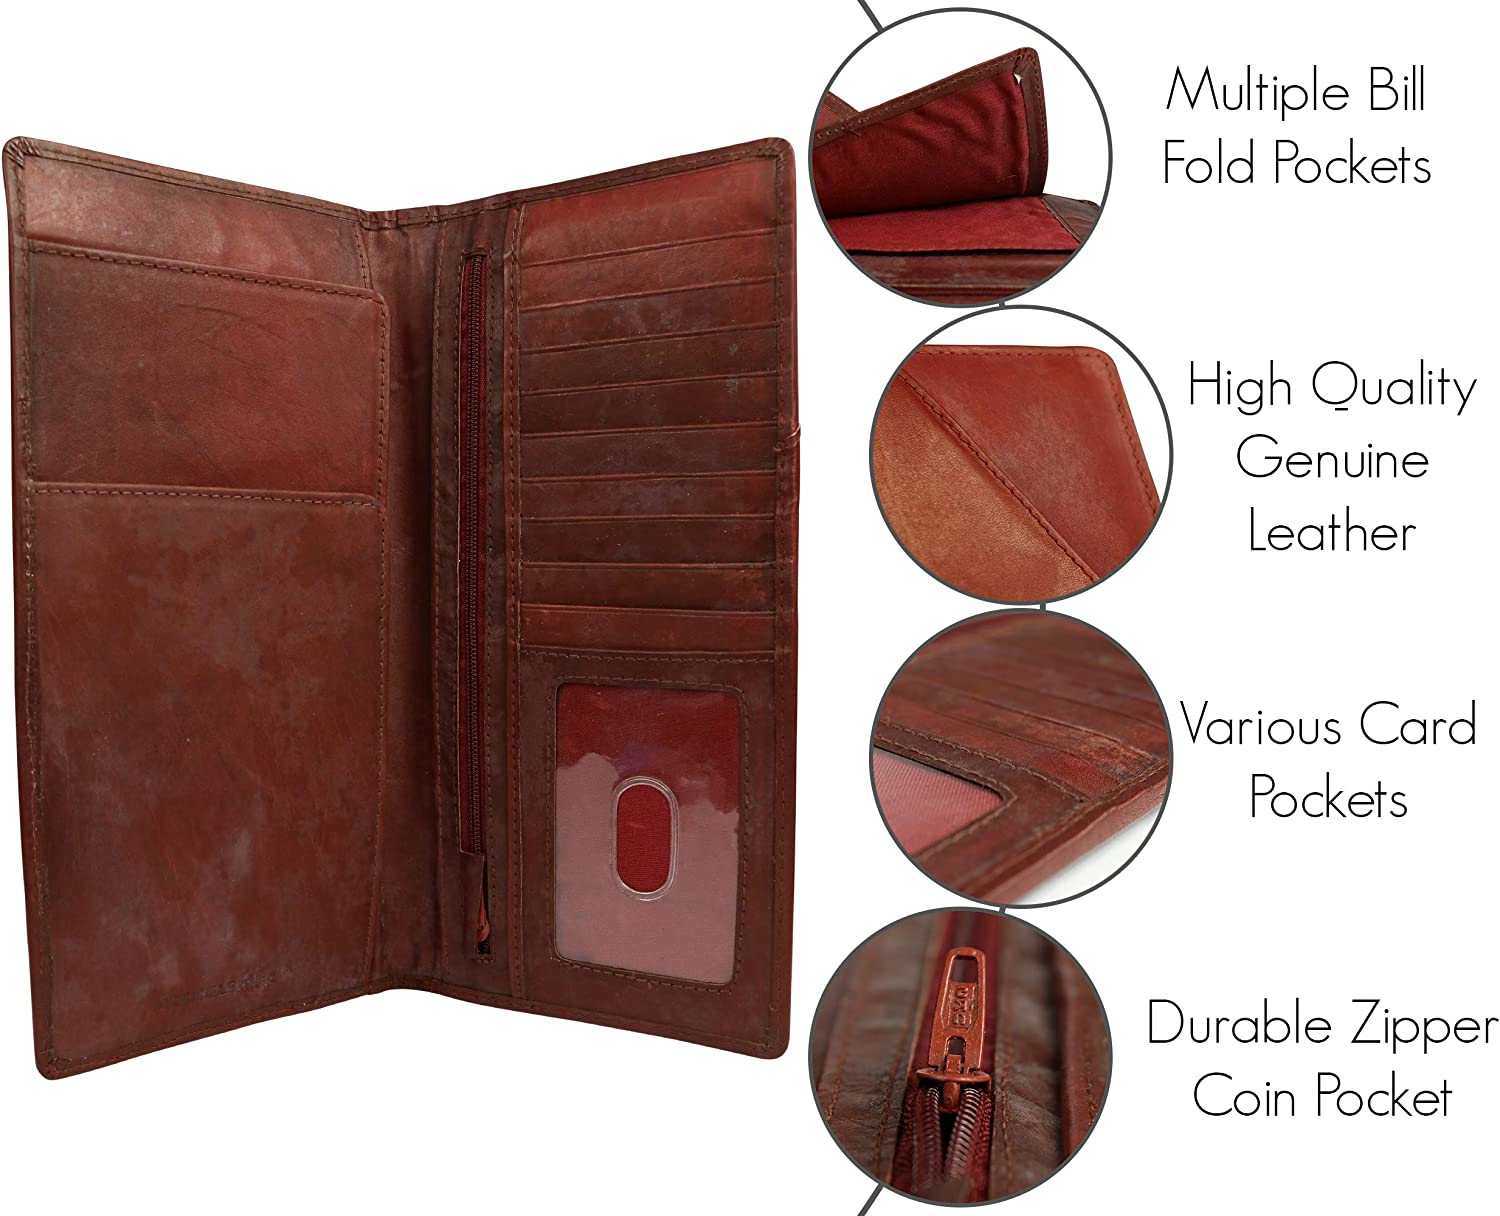 Red Brown Dwellbee Tall Leather Travel Document Organizer Mathani Cowhide